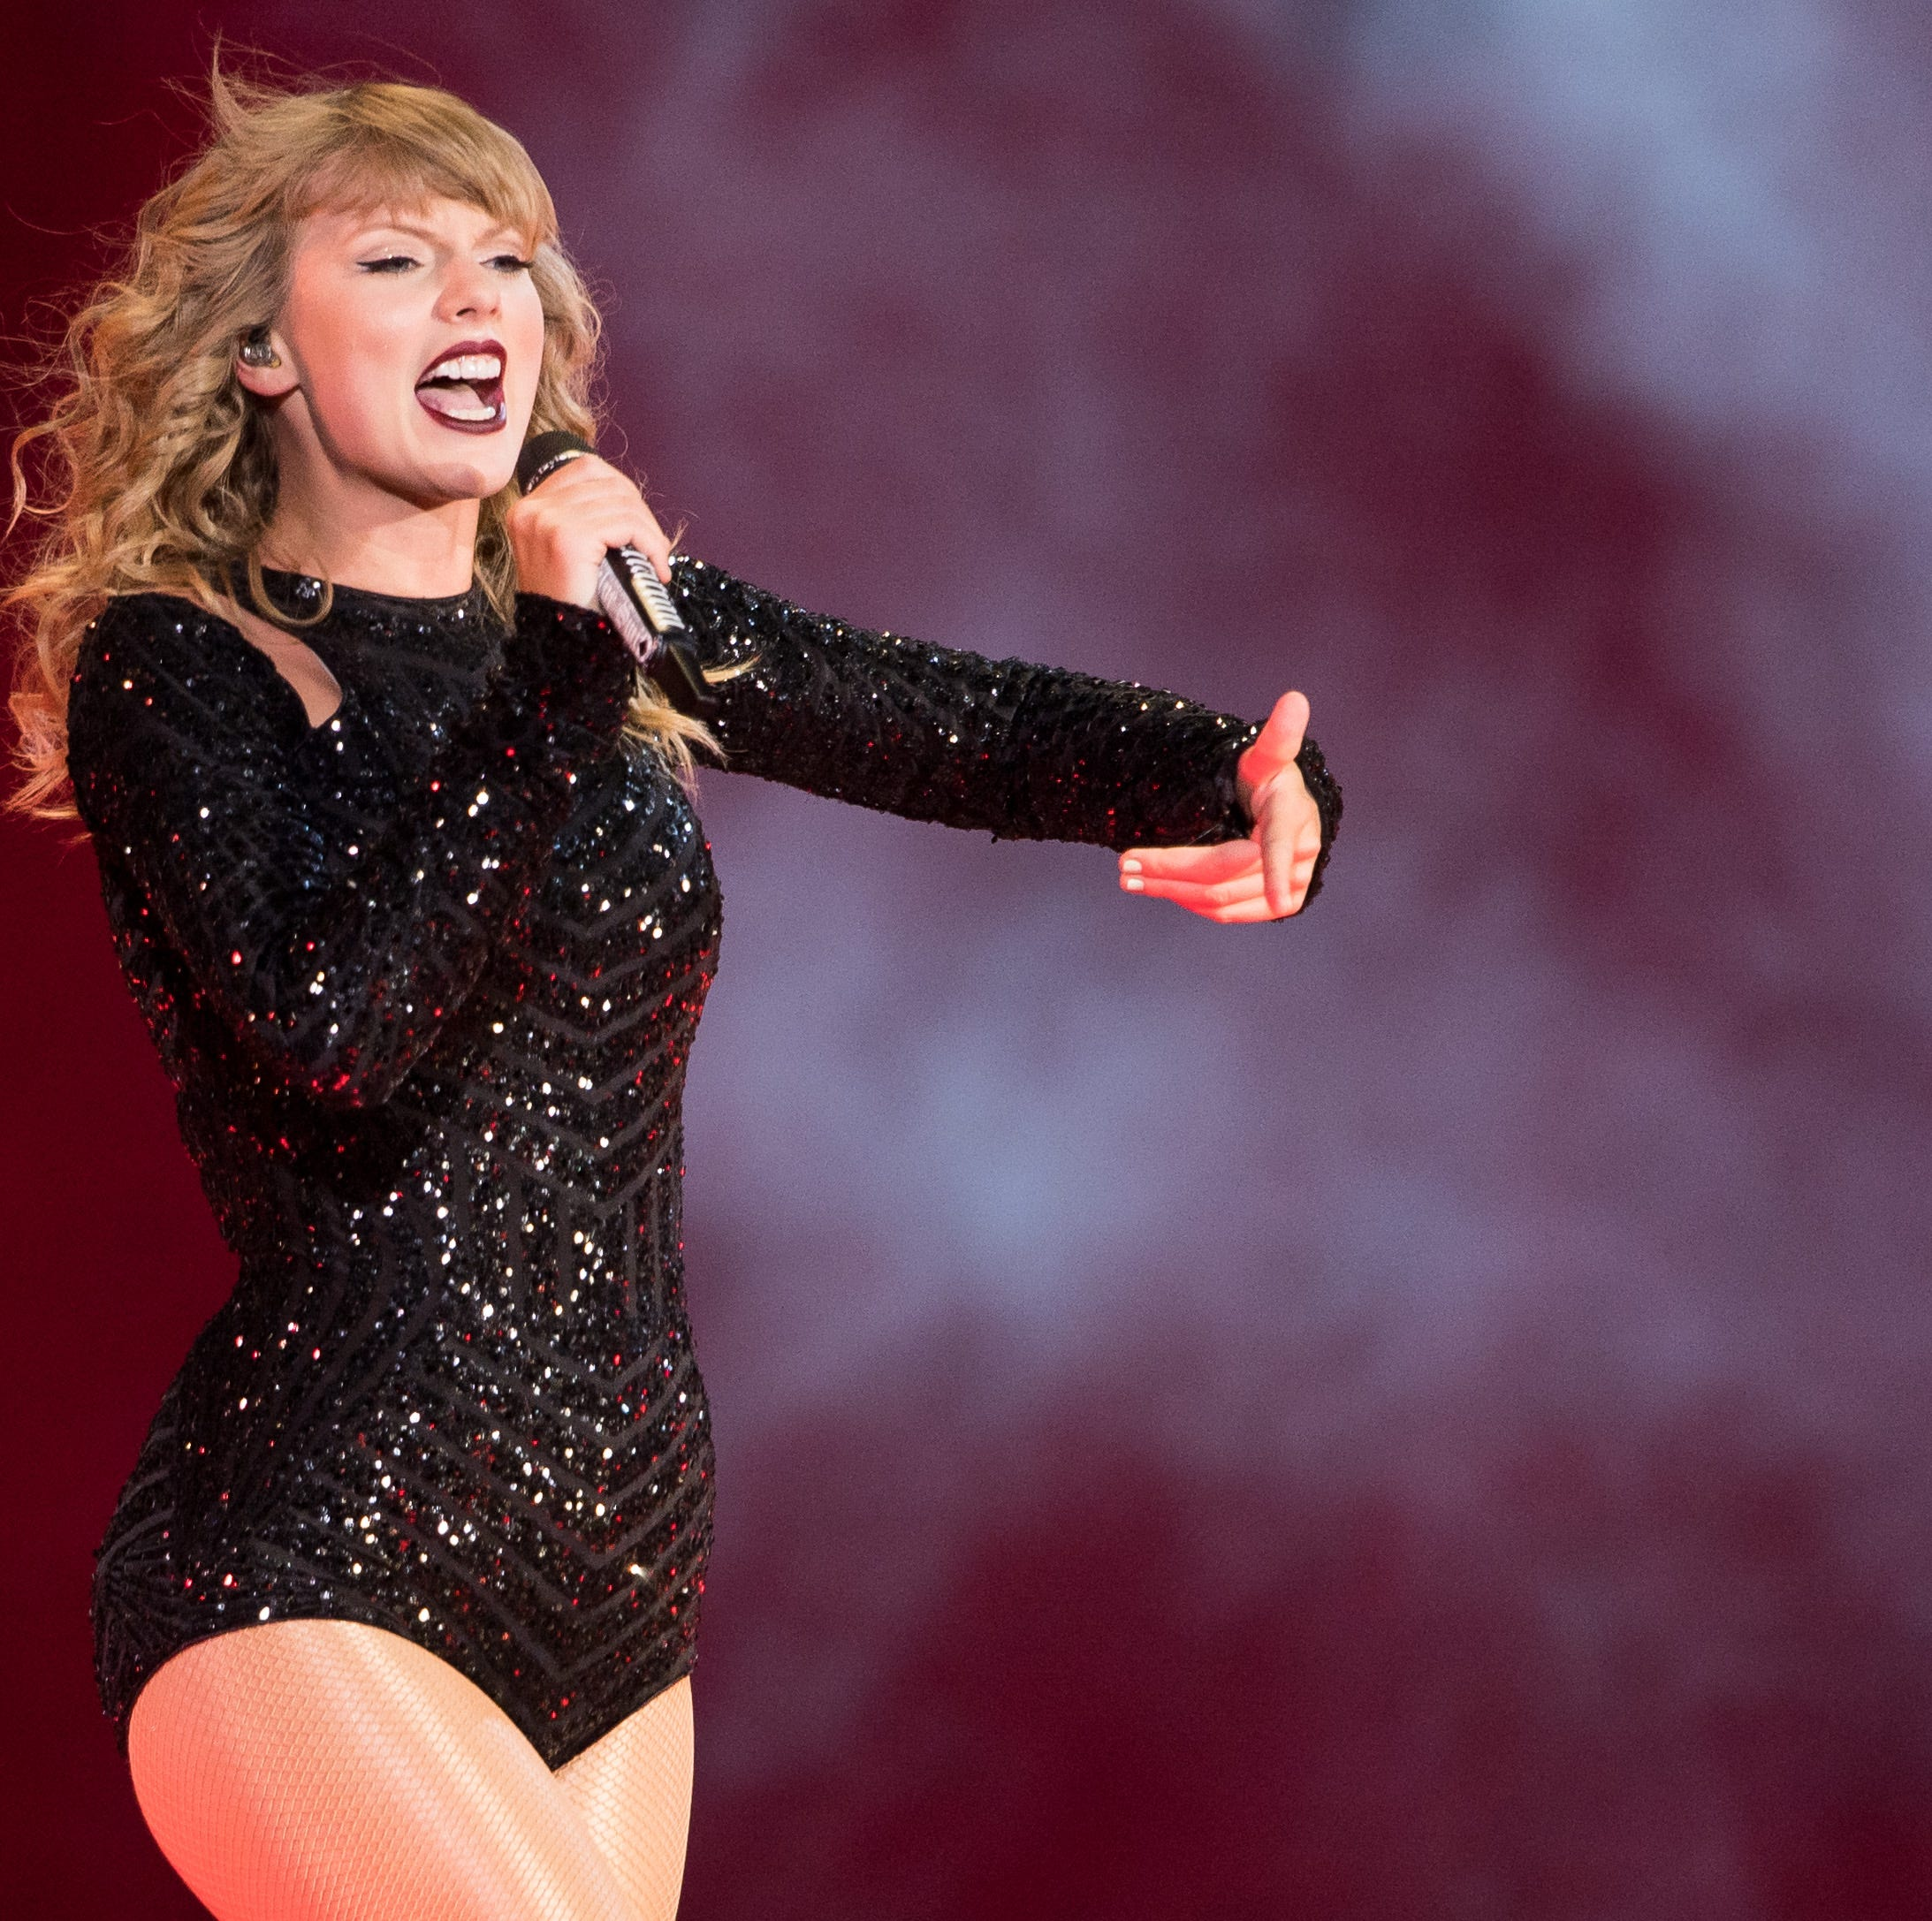 Taylor Swift's $113K donation to LGBTQ advocacy group matched by Curb Records